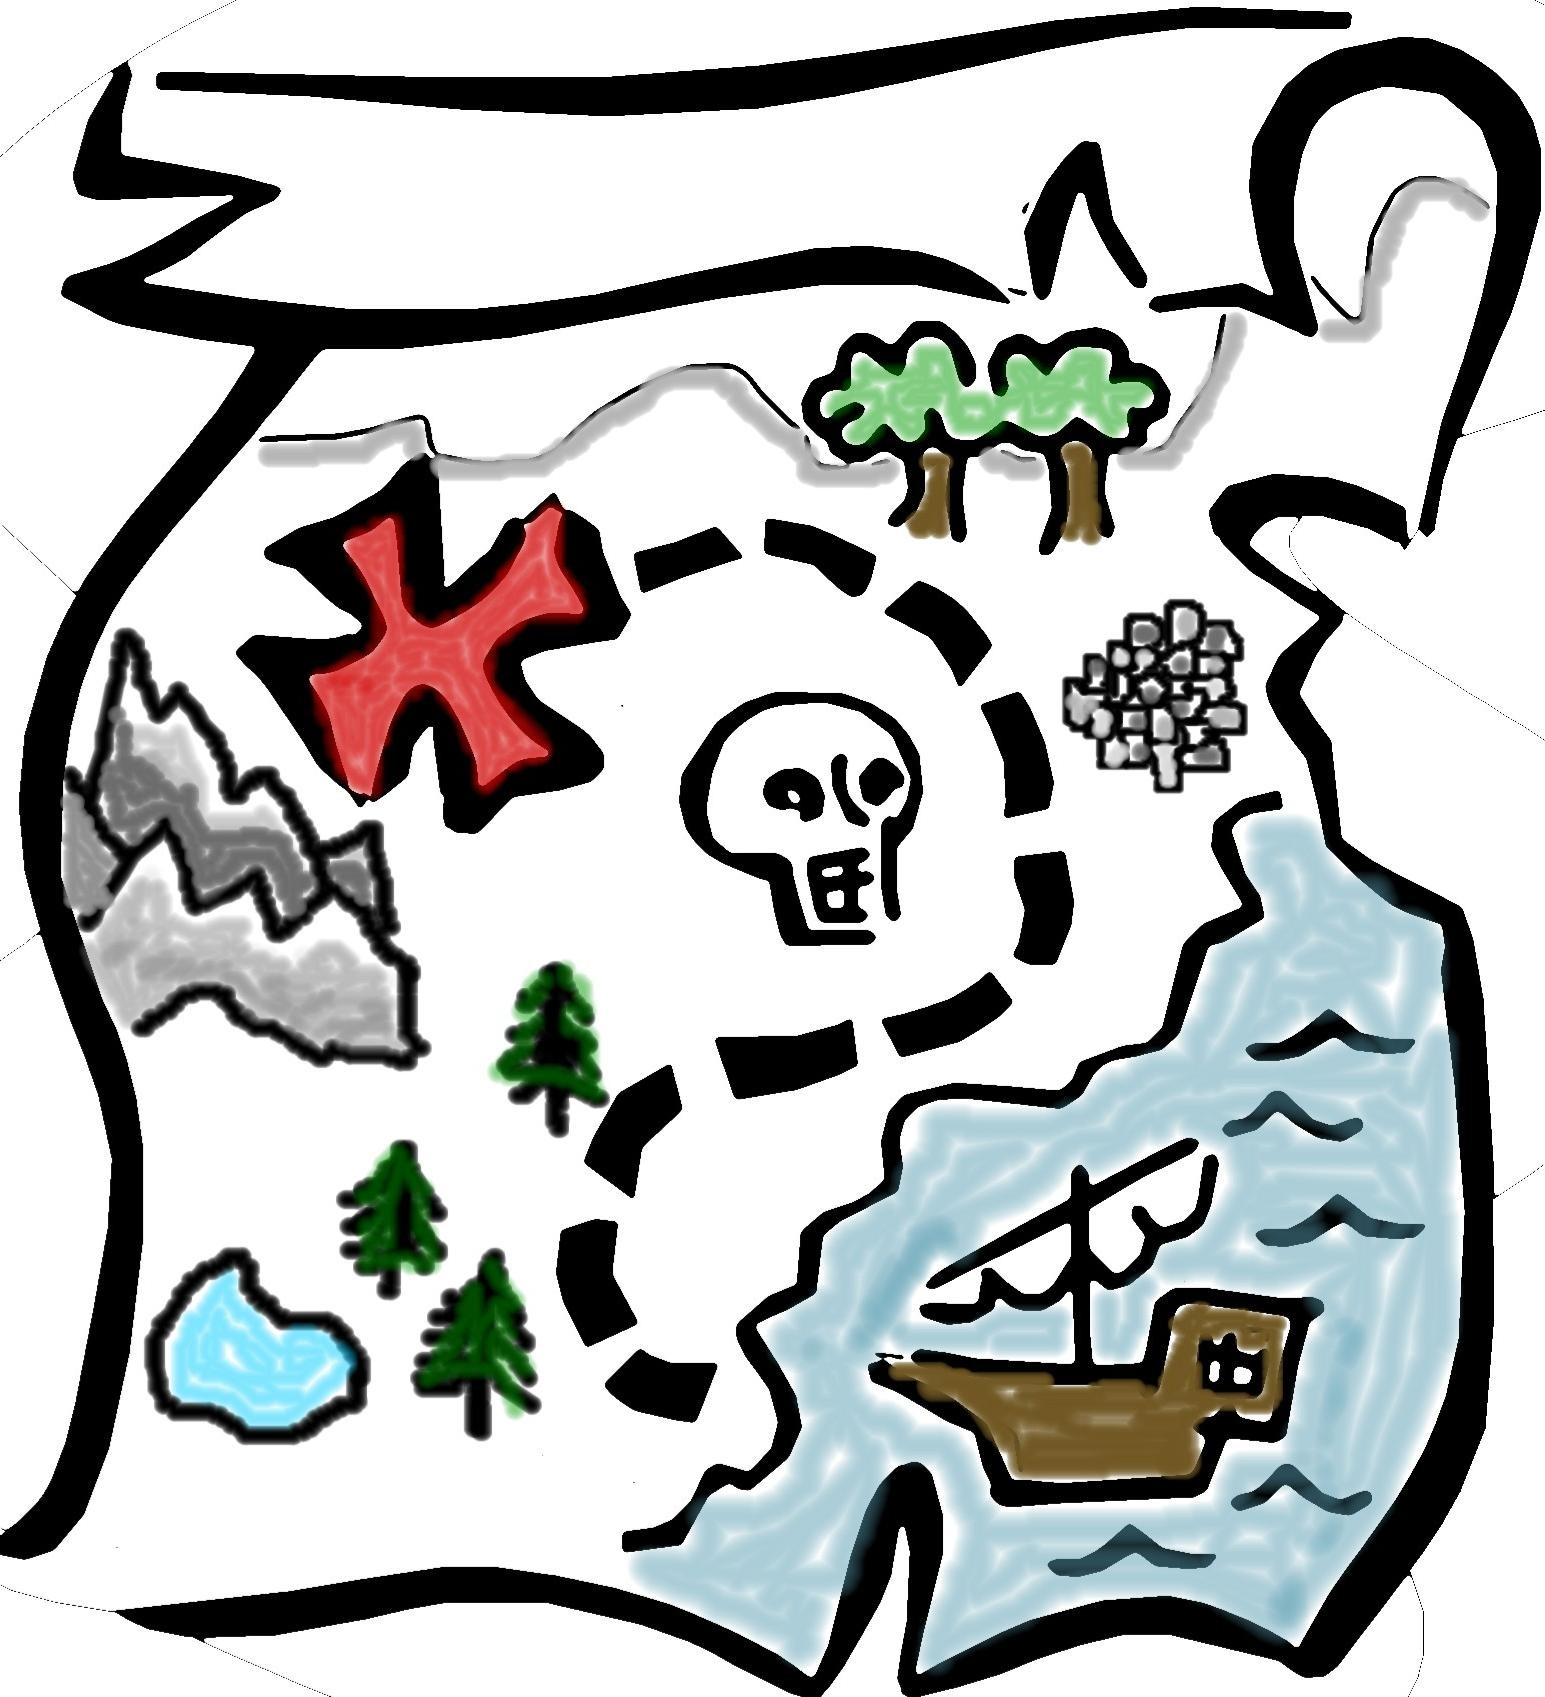 Treasure map clipart 4 » Clipart Station.